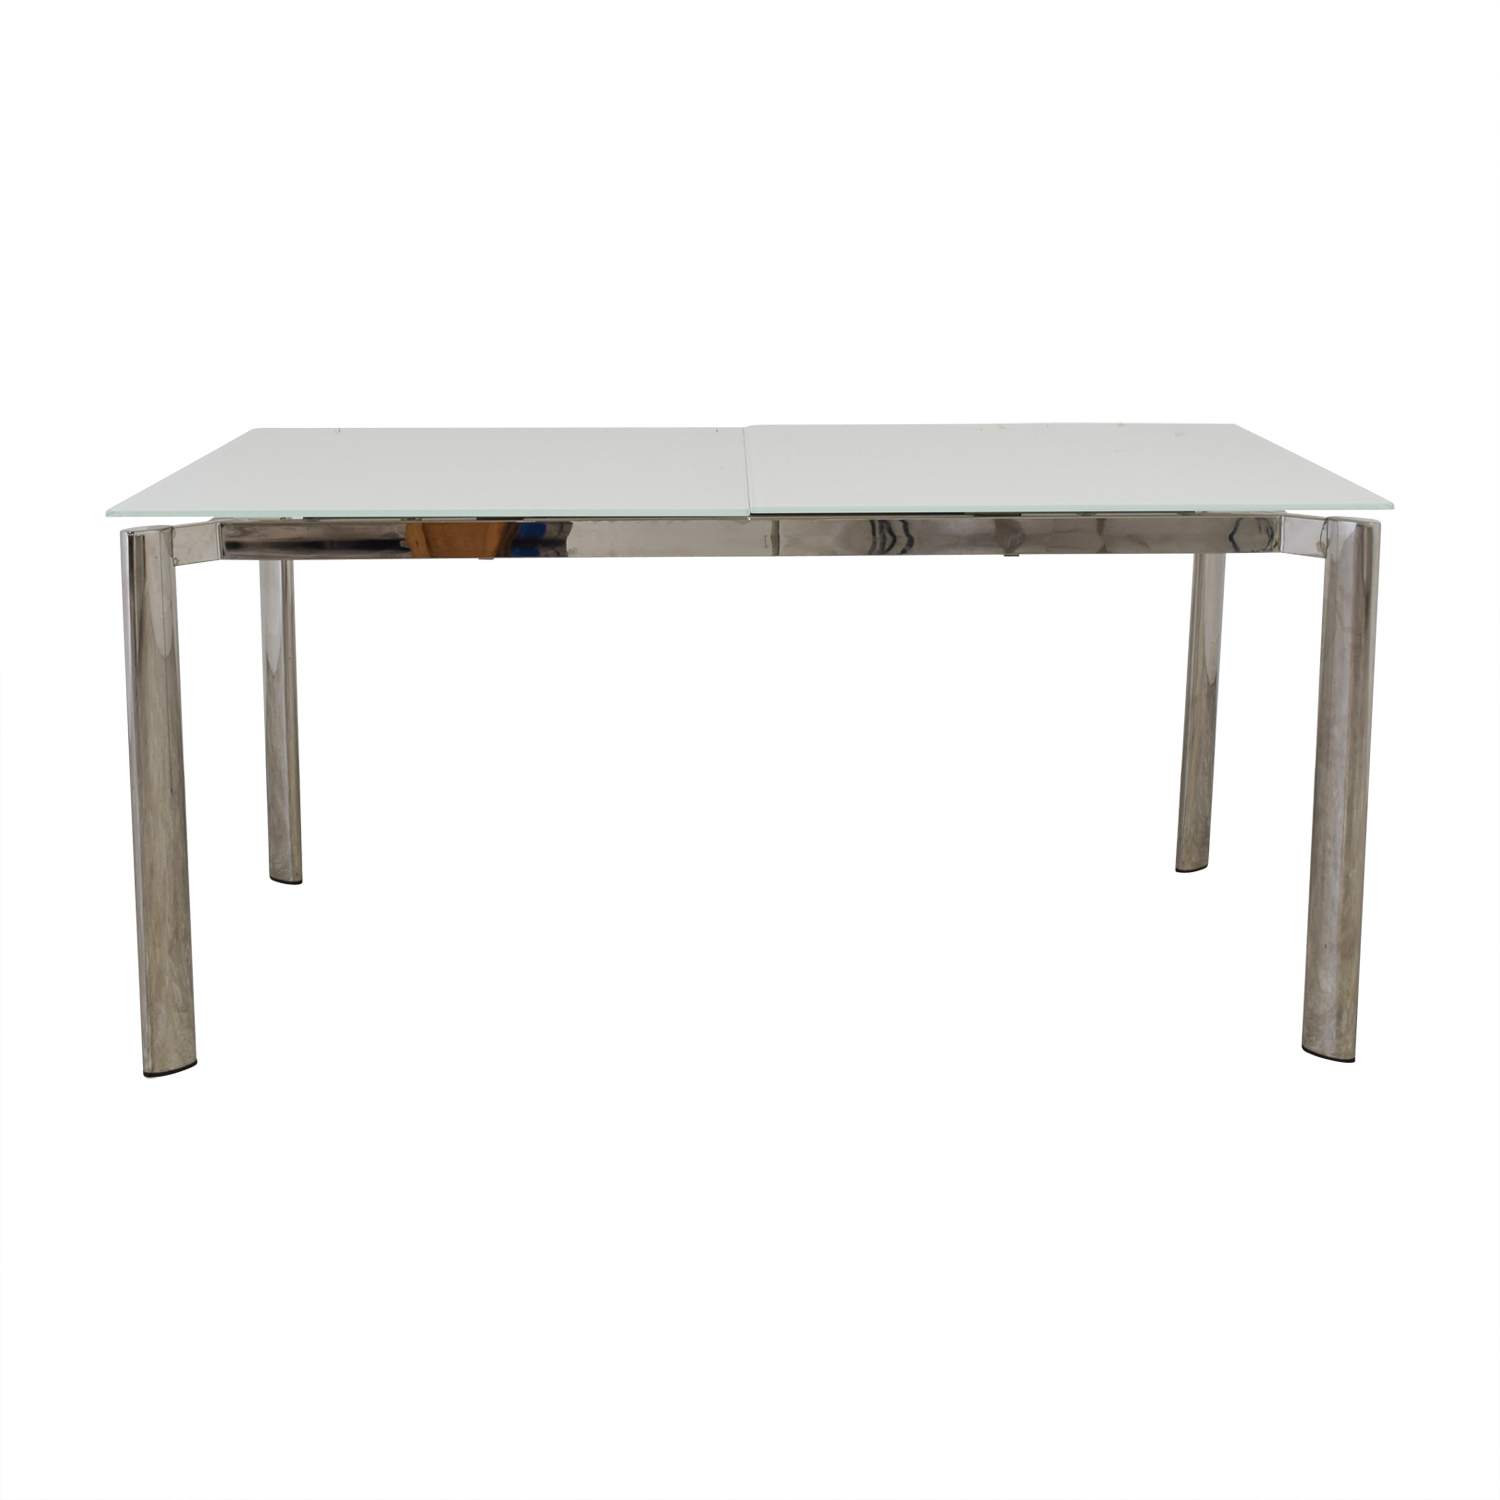 Modani Expandable White Glass and Chrome Dining Table Modani